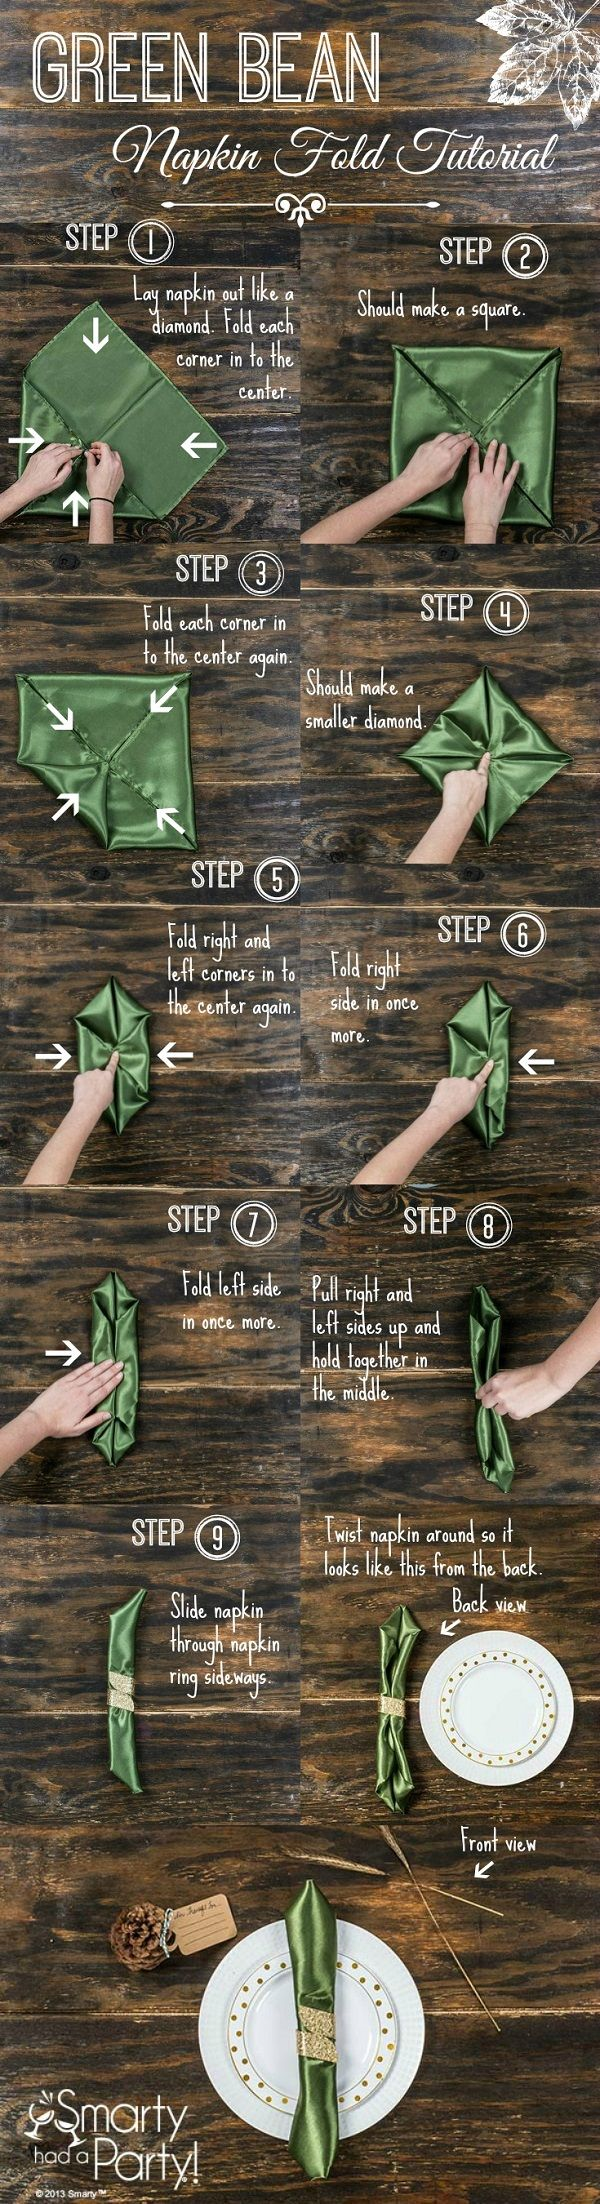 Learn how to fold this napkin with the Green Bean Napkin Fold Tutorial #SmartyHadAParty